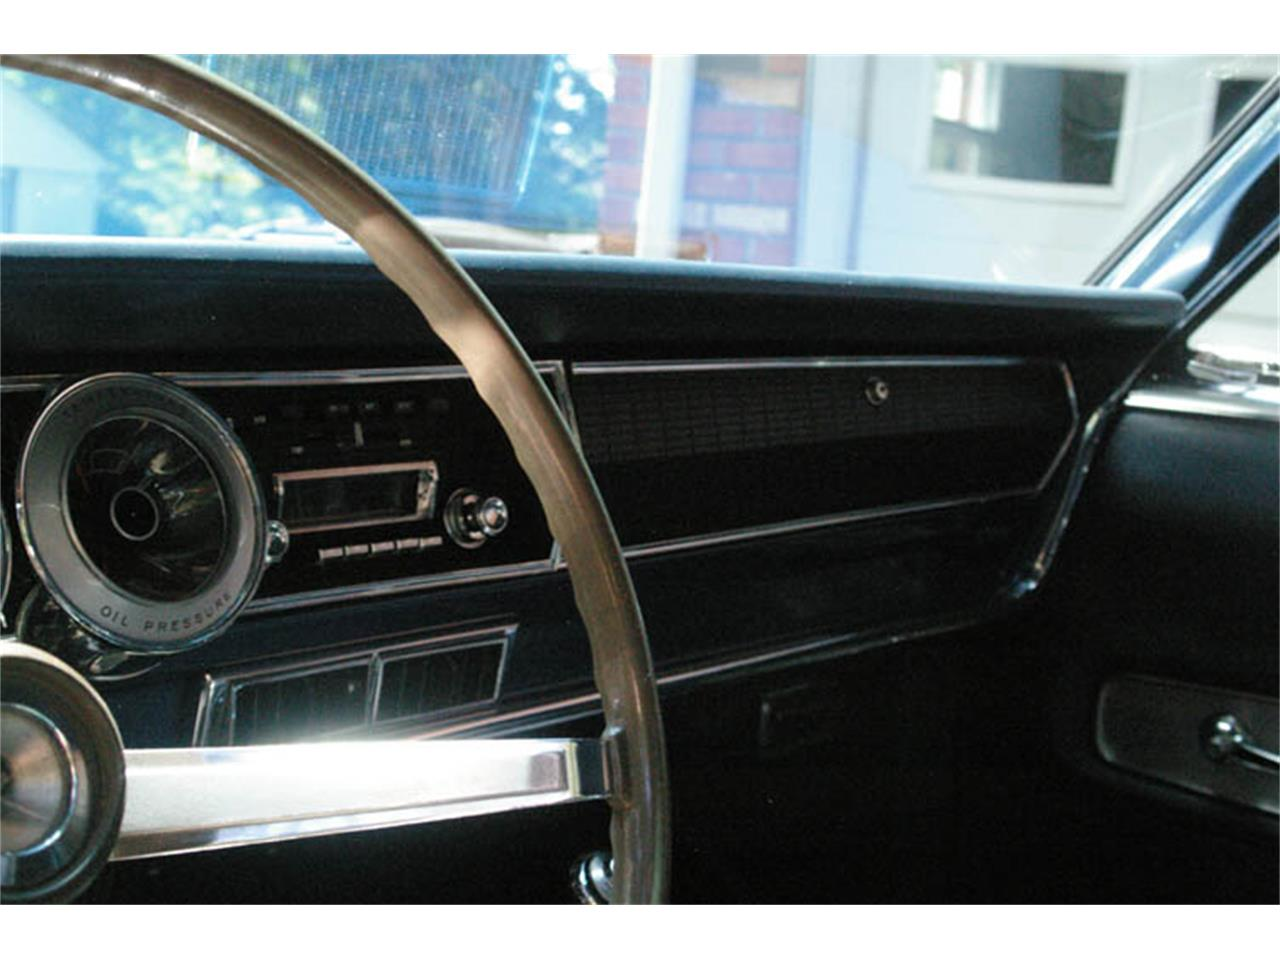 Large Picture of Classic '66 Dodge Charger located in Winston-Salem North Carolina Offered by a Private Seller - FQAT